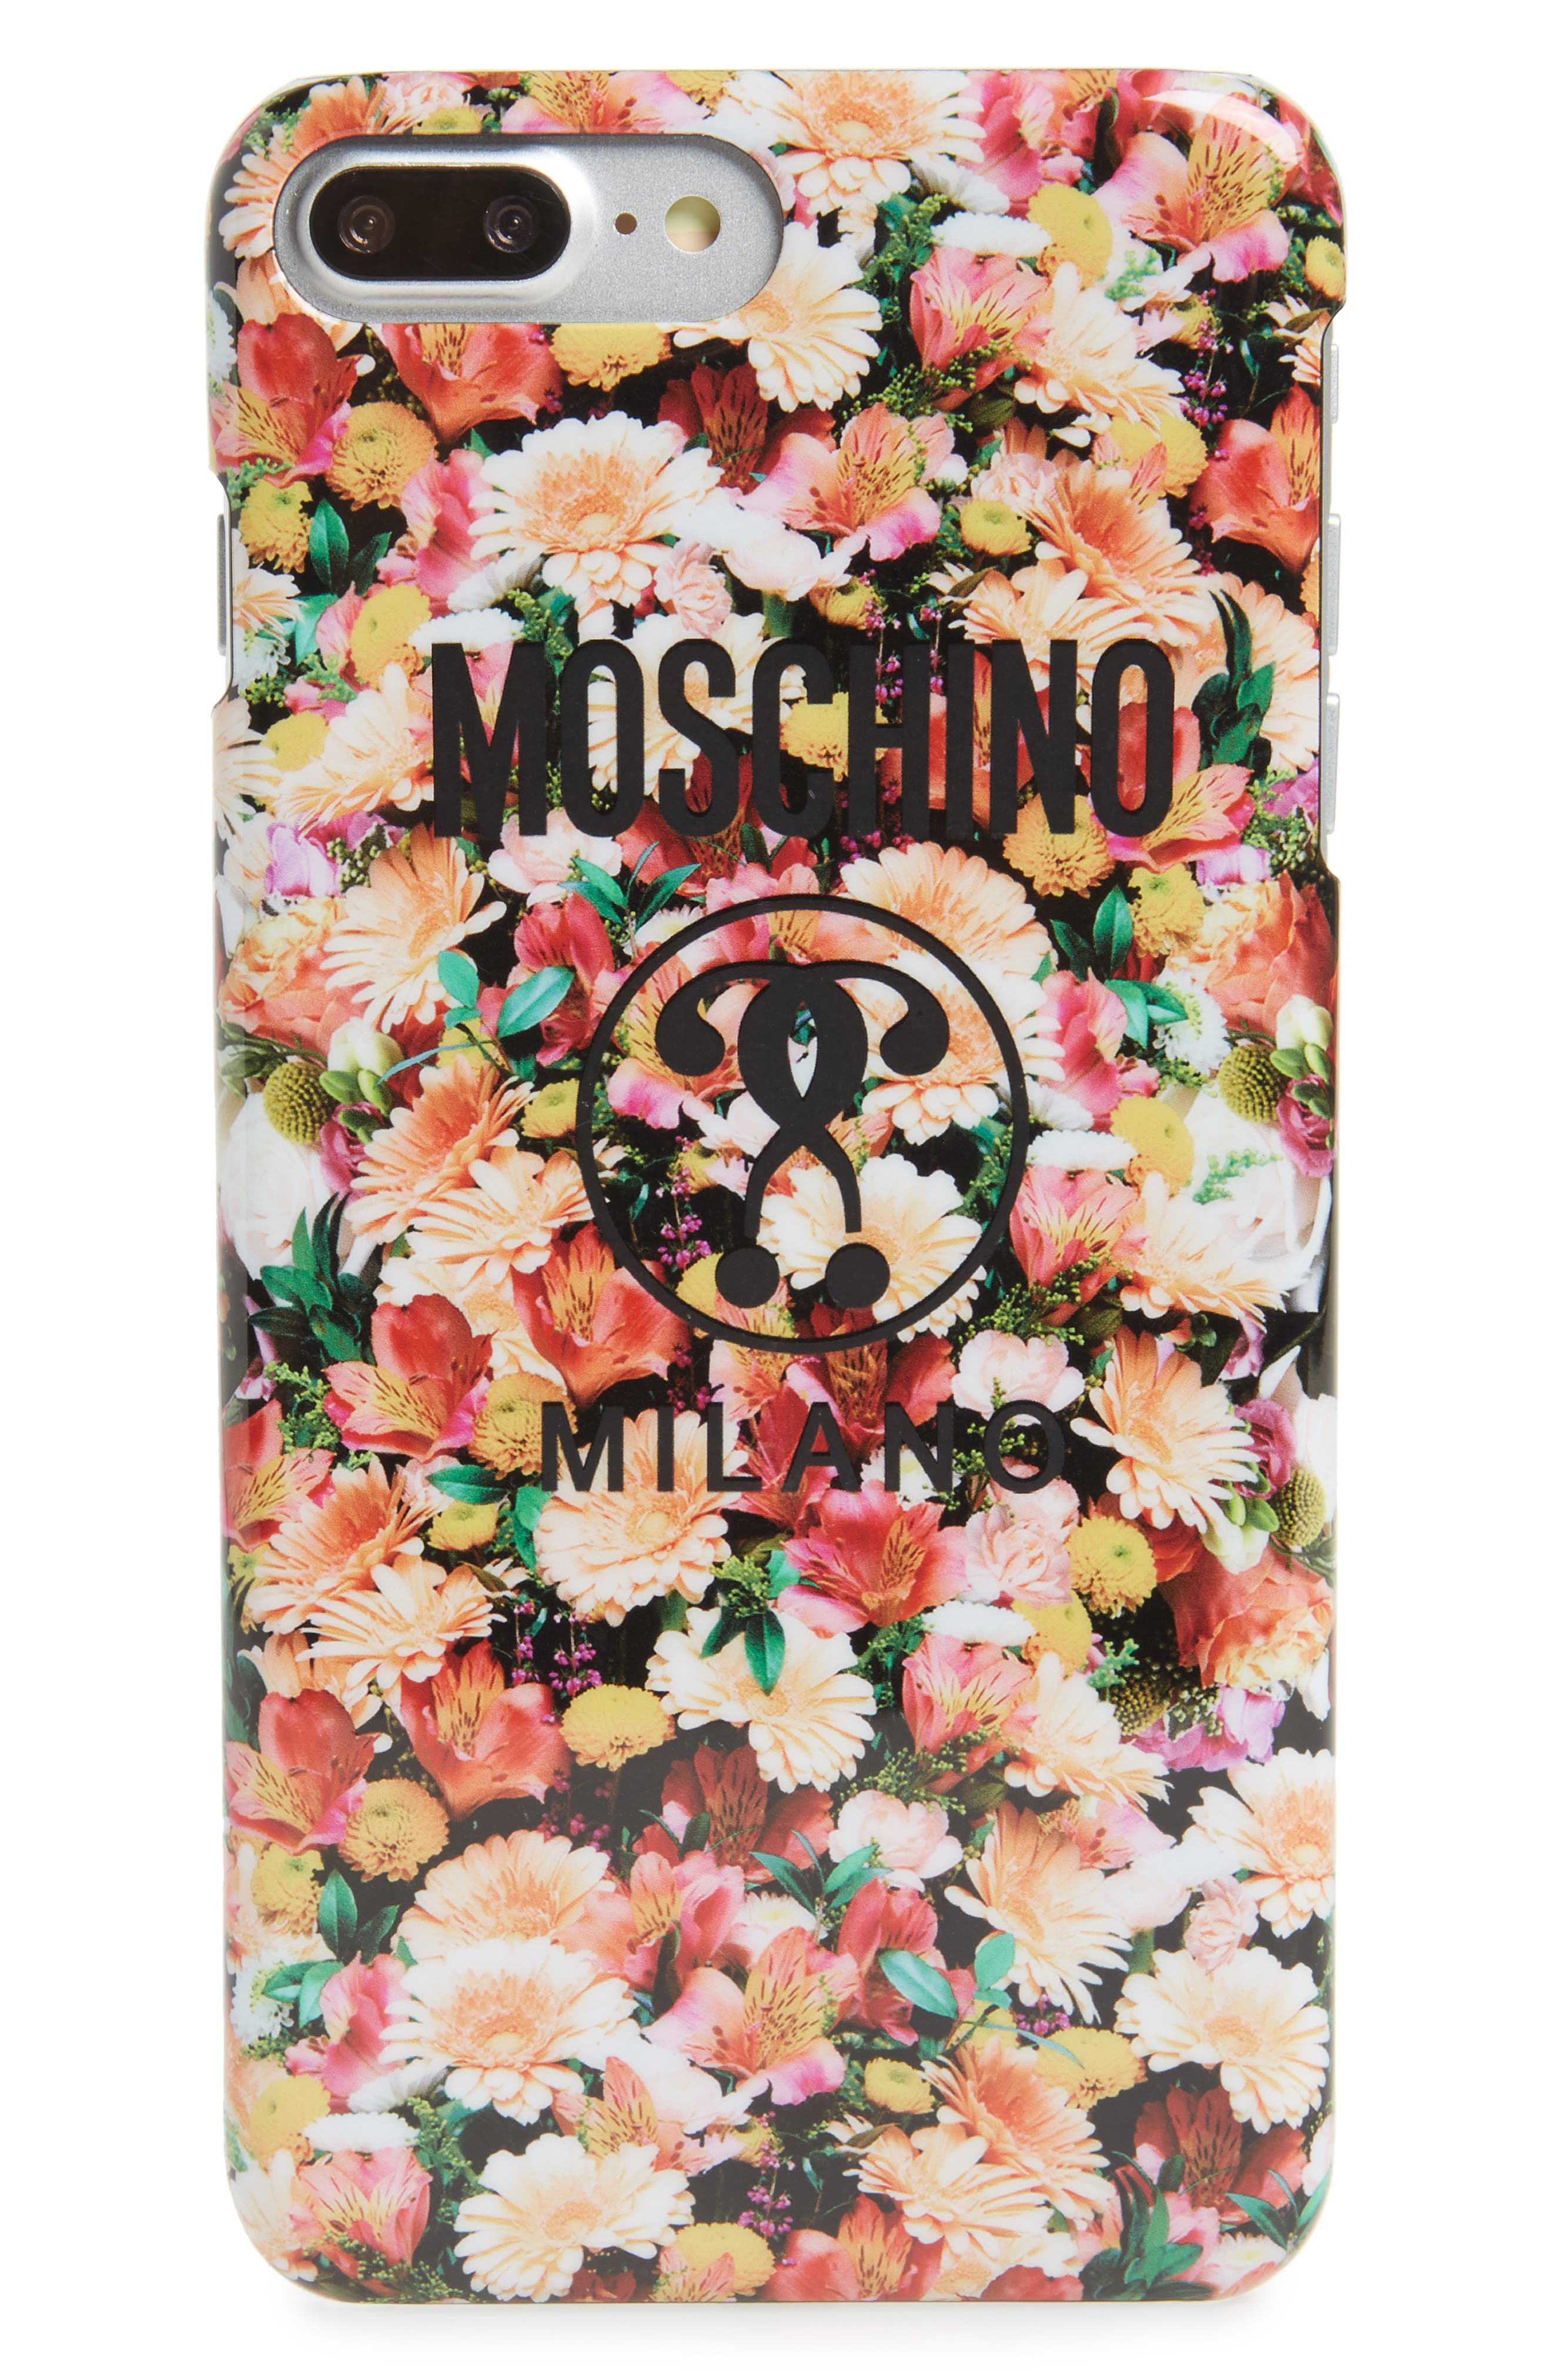 Moschino Floral Print iPhone 6/7/8 Plus Case